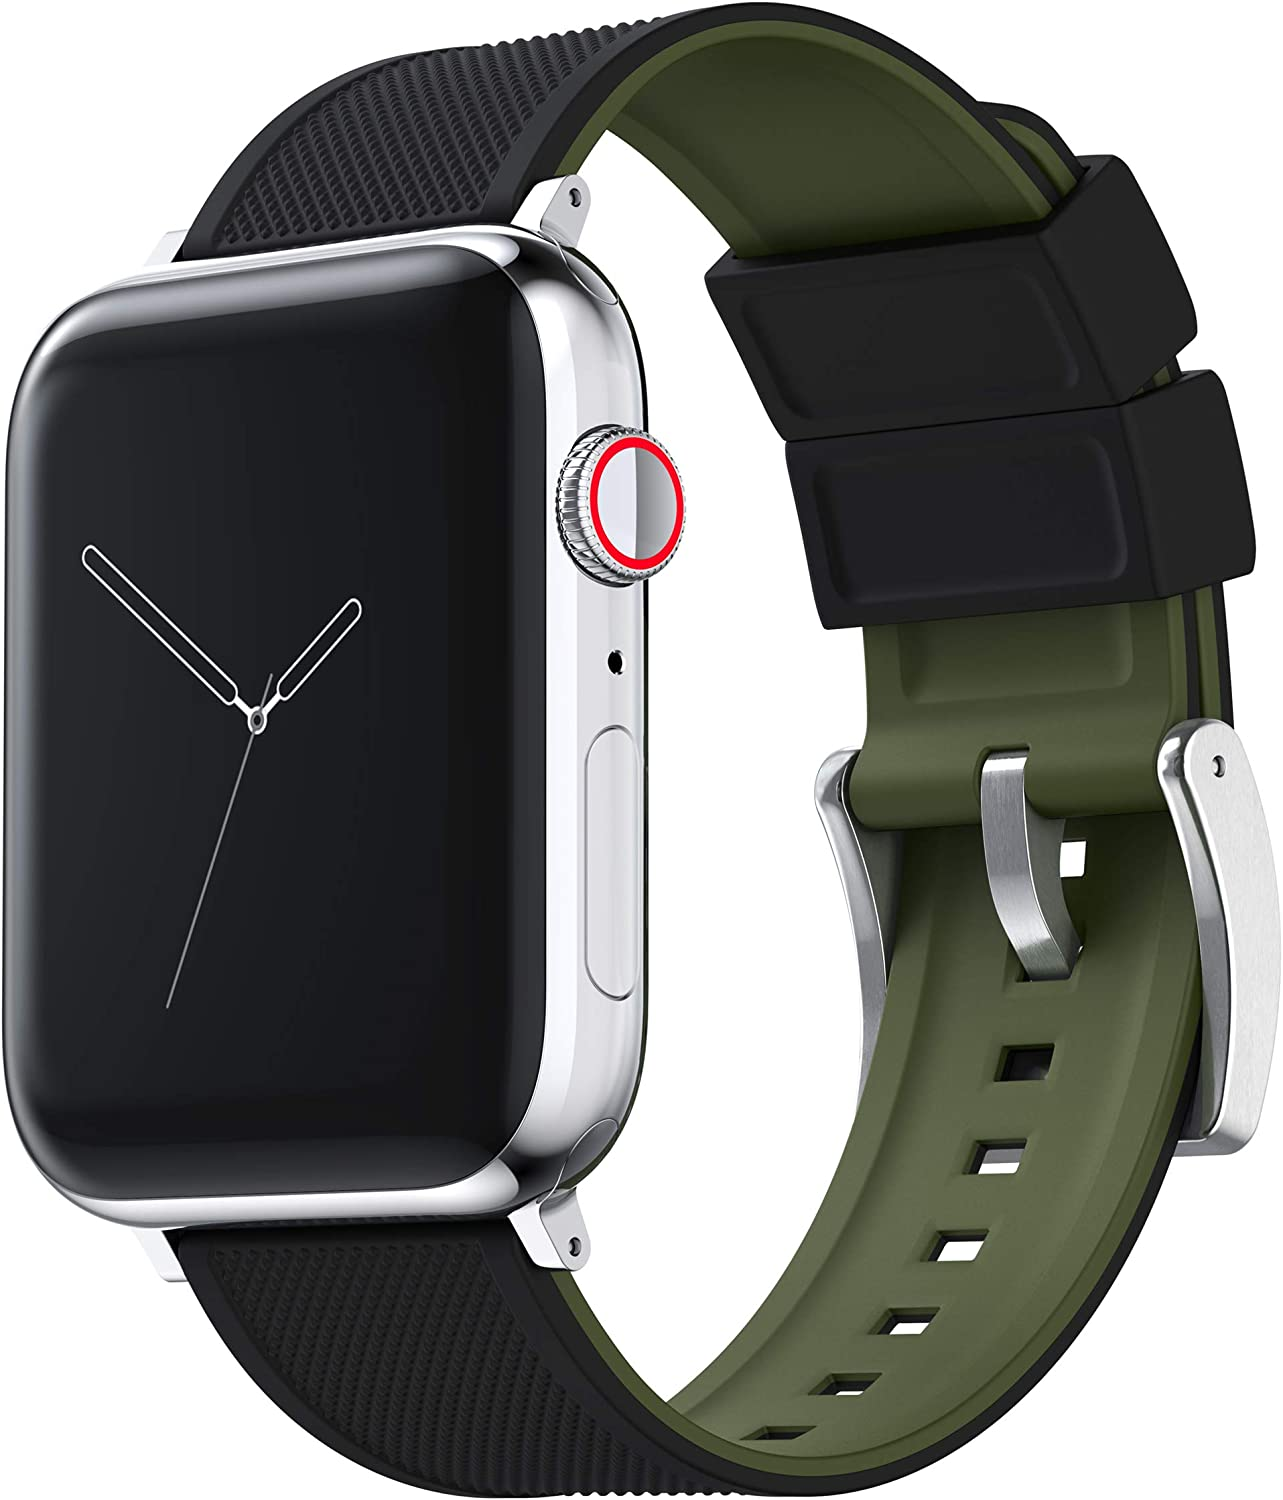 BARTON Watch Bands - Elite Silicone Watch Straps - Black PVD Hardware & Adapters - Quick Release - Choose Color & Size - Compatible with All Apple Watches - 38mm, 40mm, 42mm, 44mm